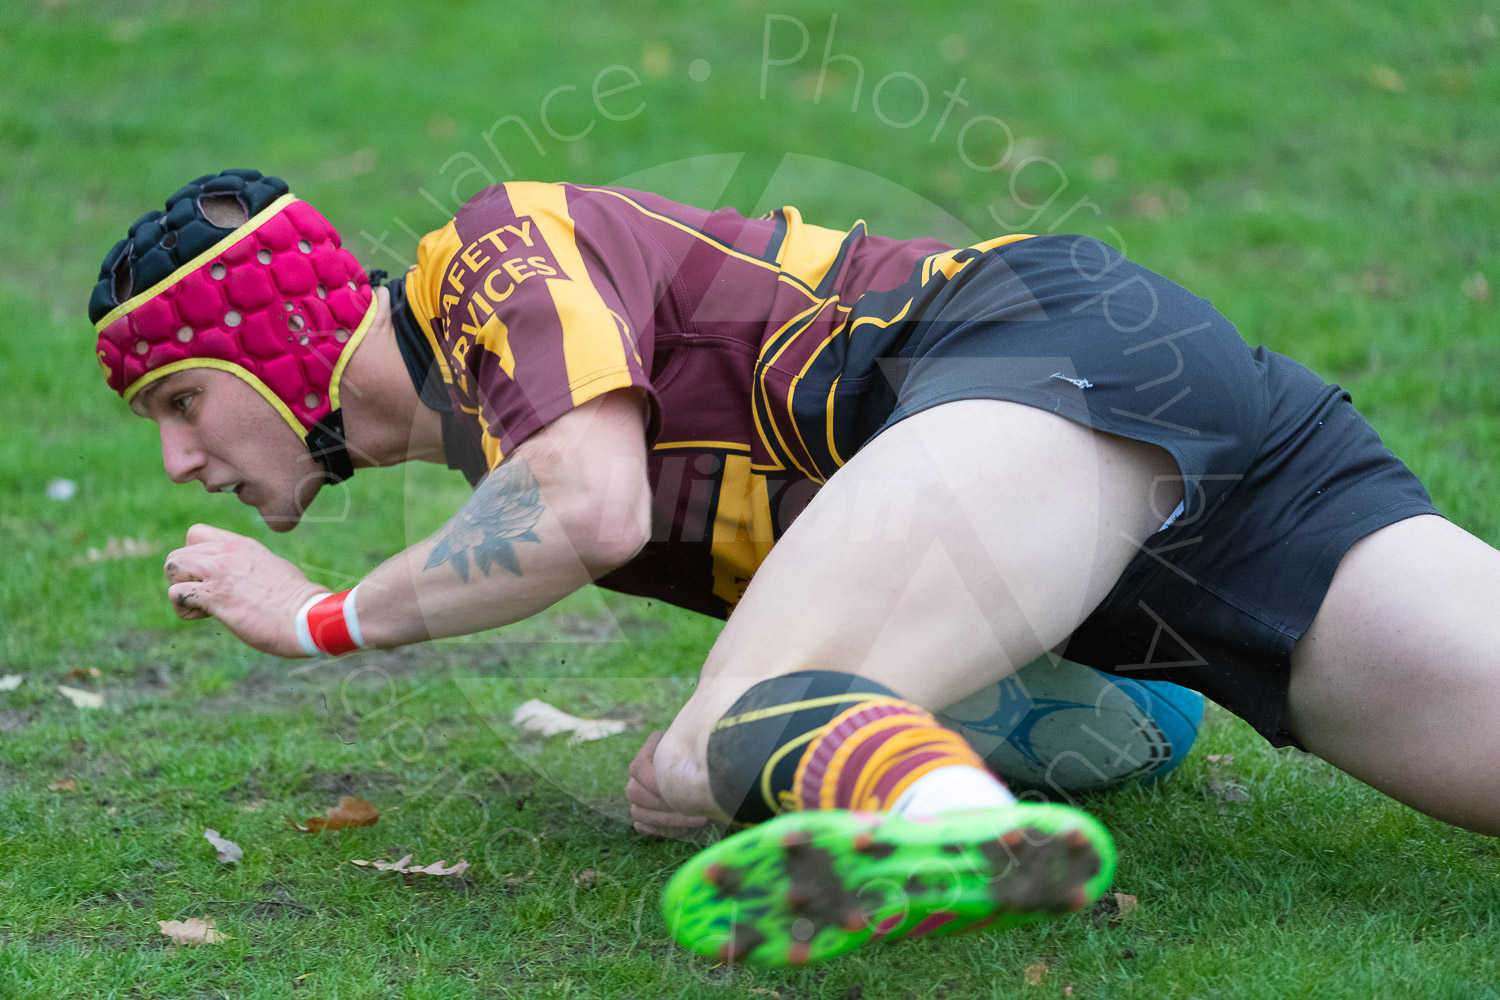 20181027 Amp Extras vs St Neots 2nd XV #2347